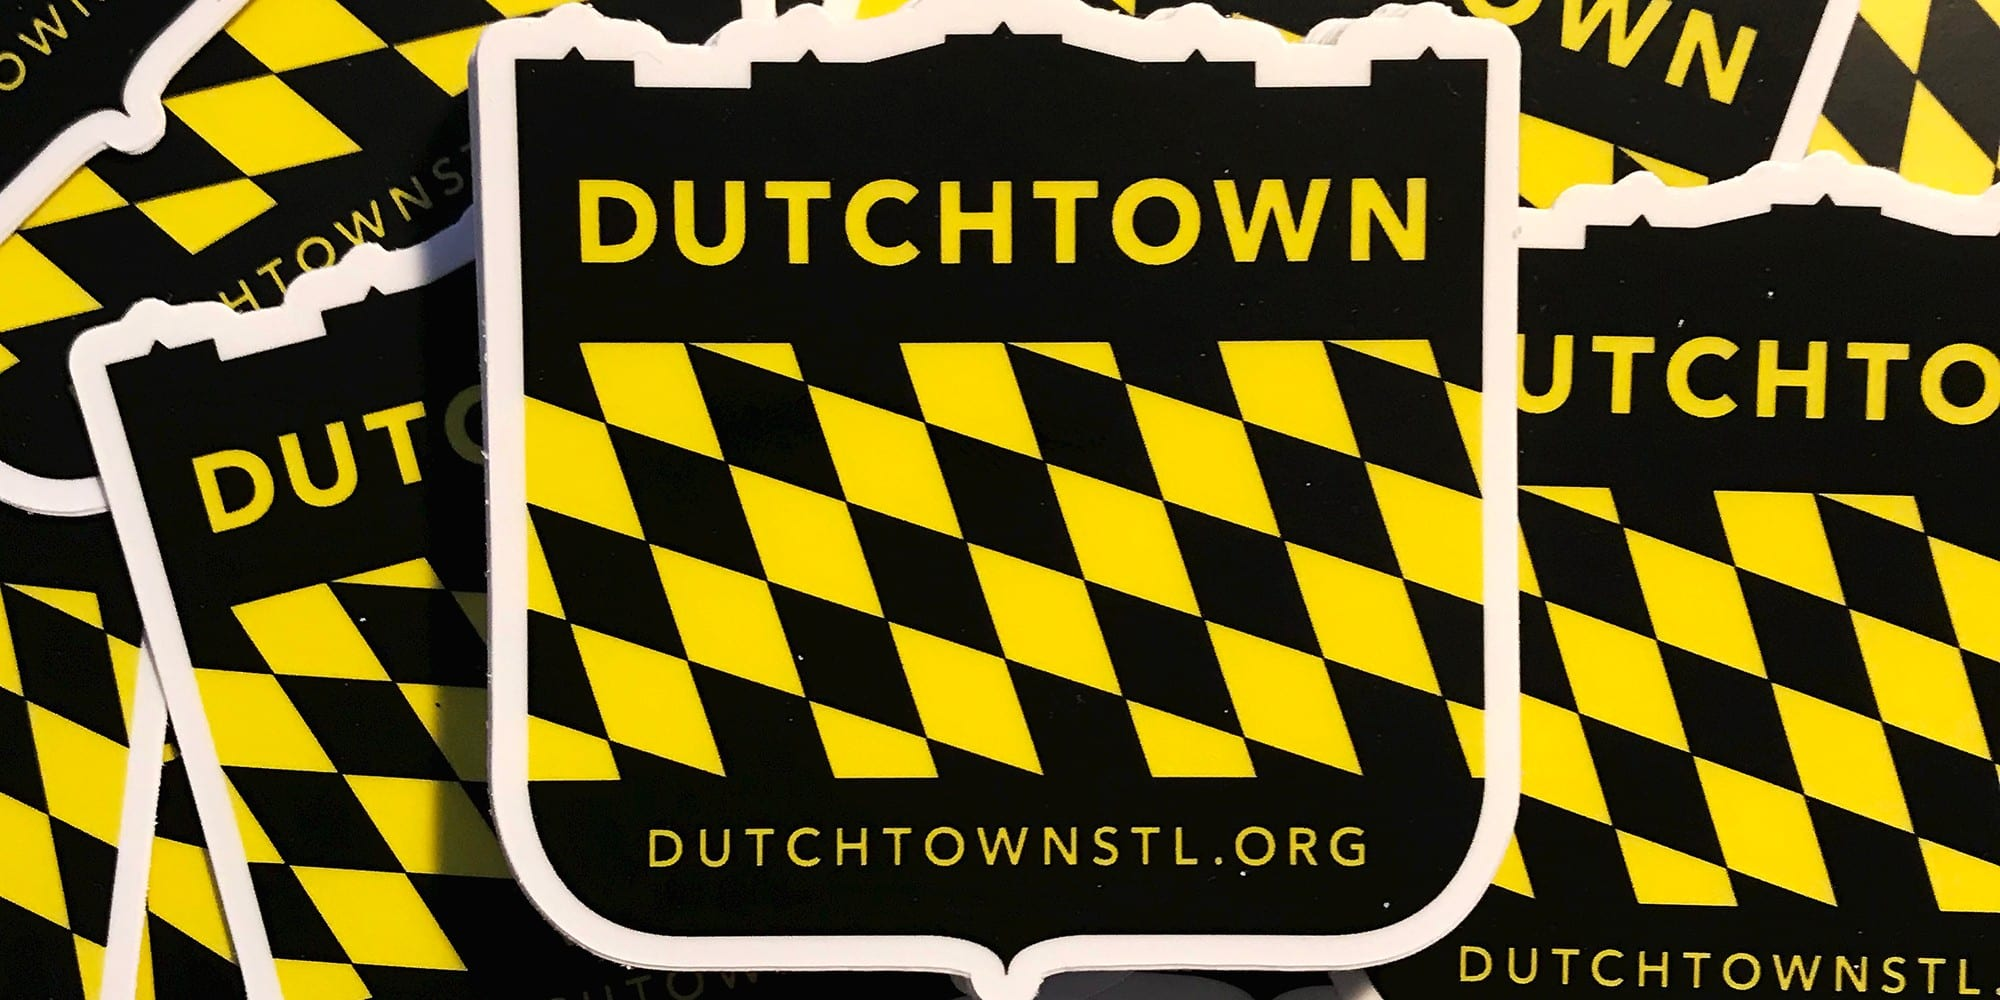 DutchtownSTL.org stickers.